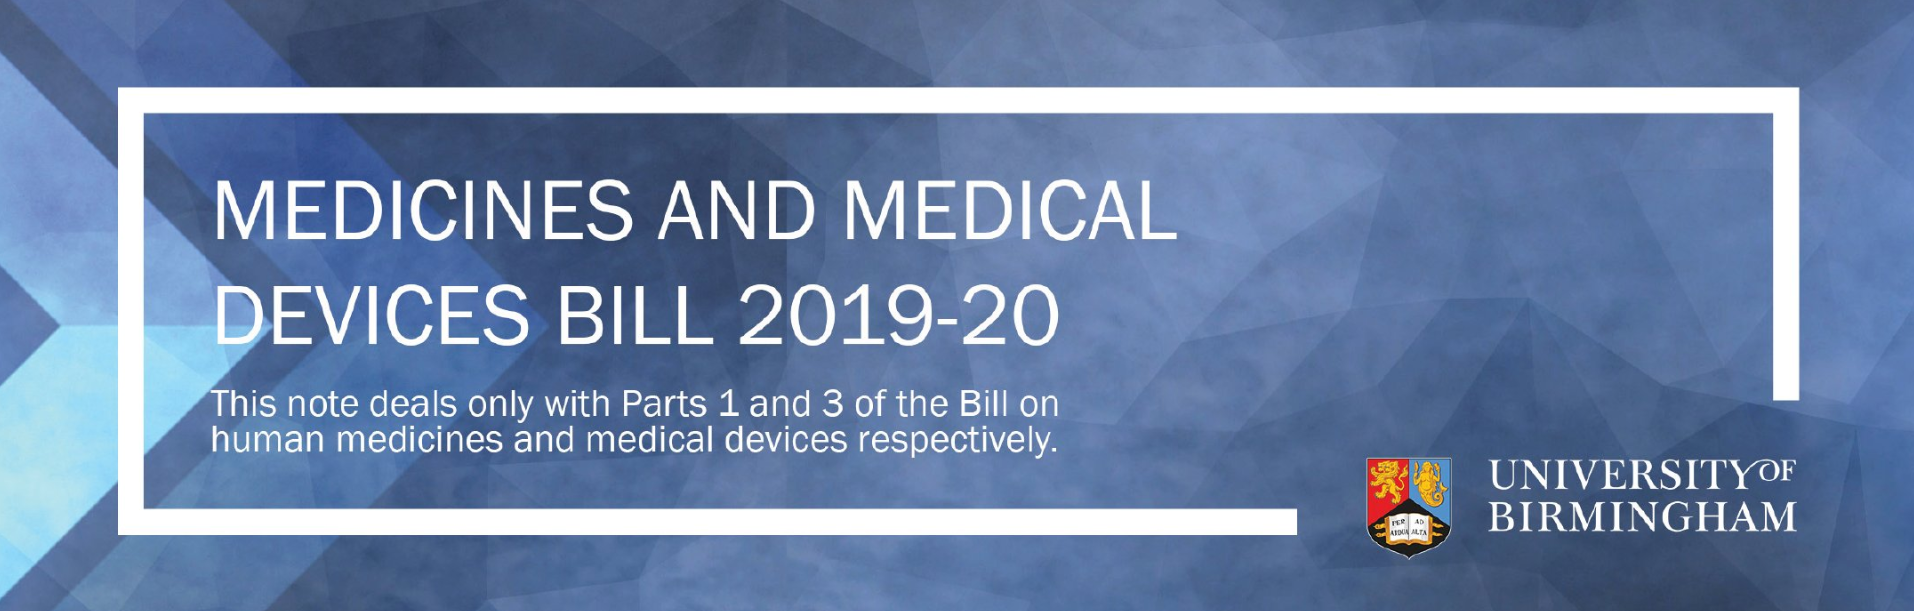 Medicines and Medical Devices Bill - report cover